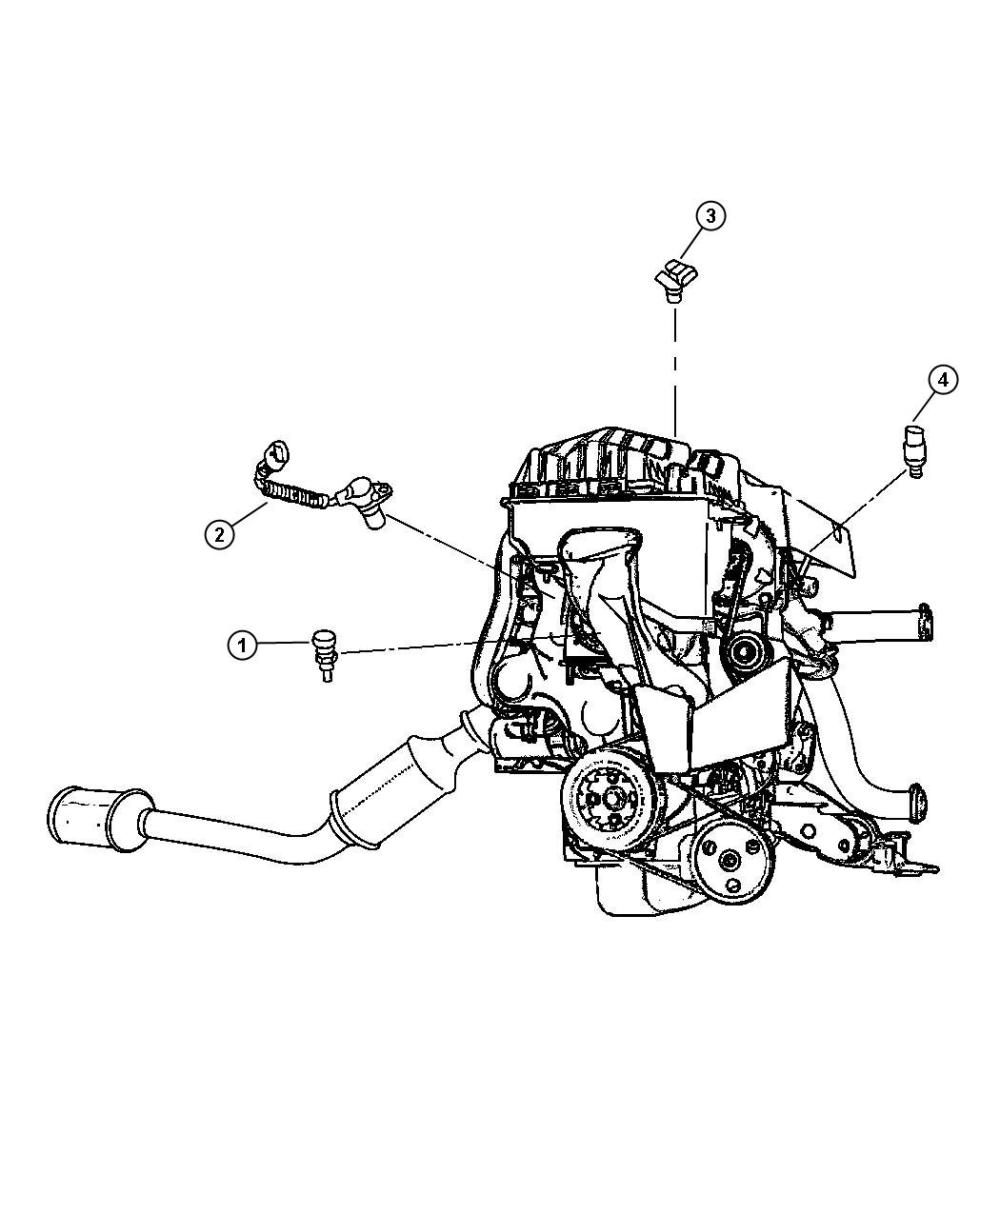 medium resolution of 1999 buick century 3 1 liter engine diagram besides 7d0sx chevrolet impala need